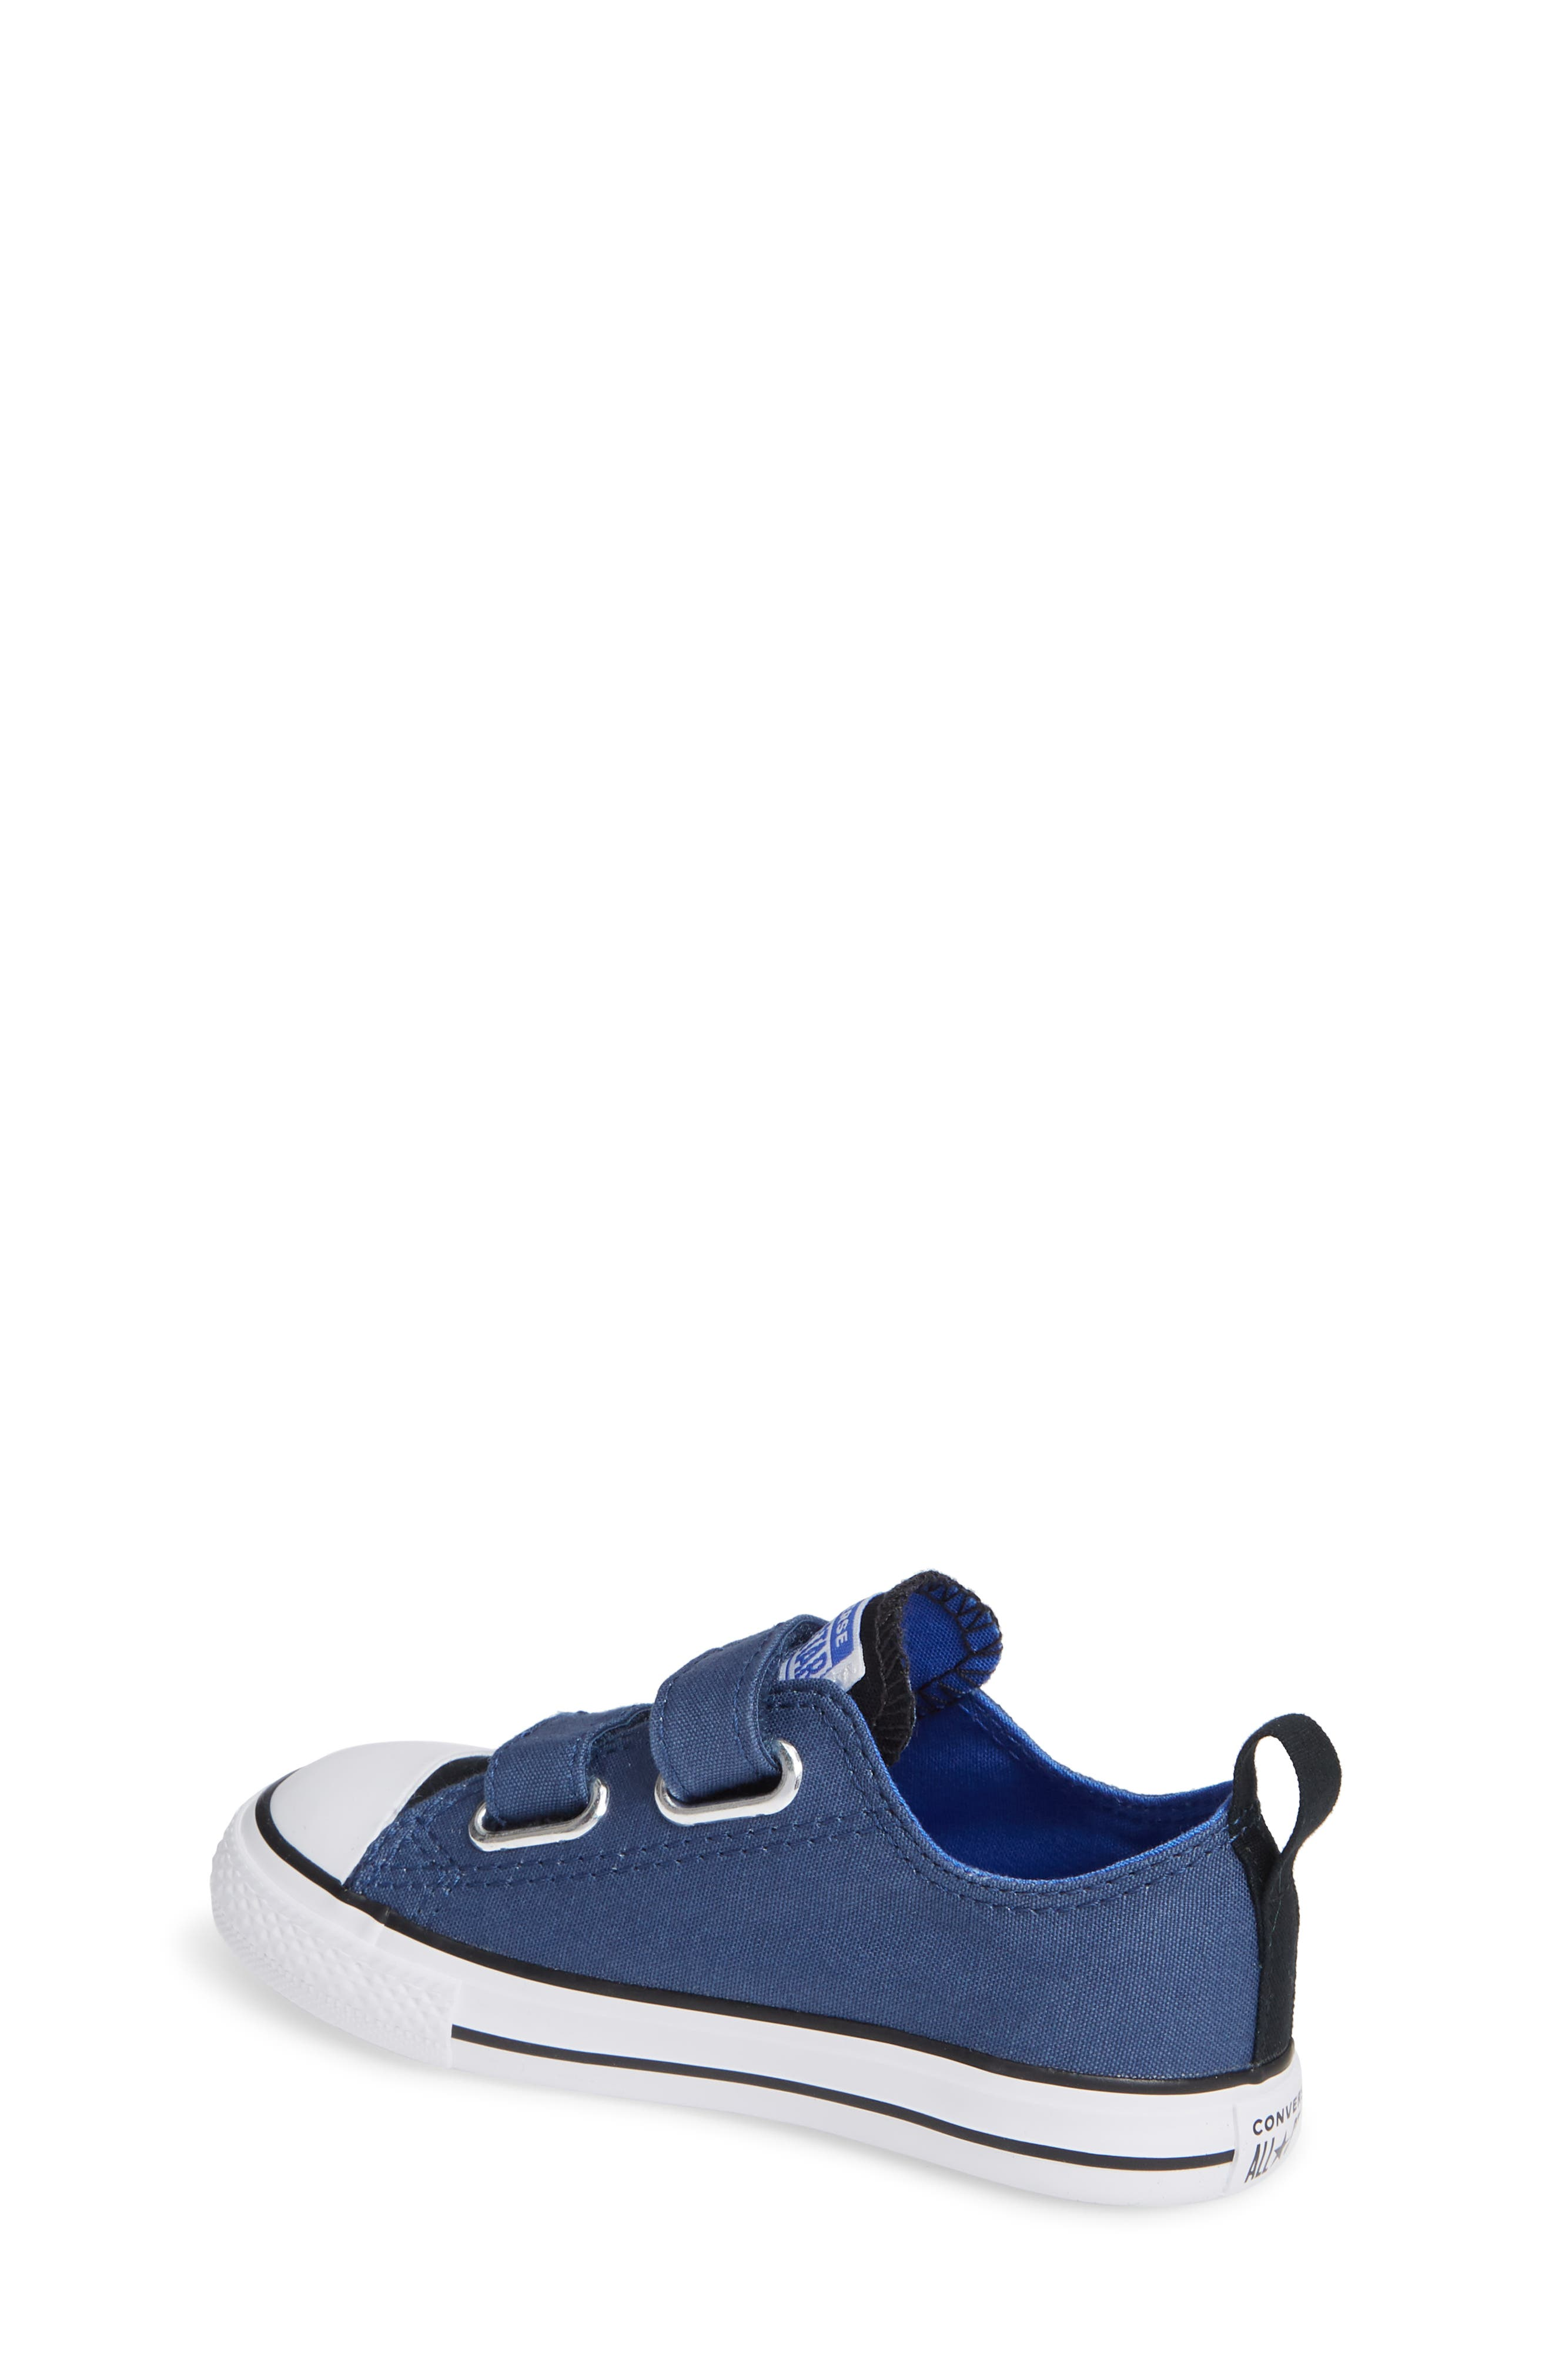 Chuck Taylor<sup>®</sup> 'Double Strap' Sneaker,                             Alternate thumbnail 2, color,                             Mason Blue